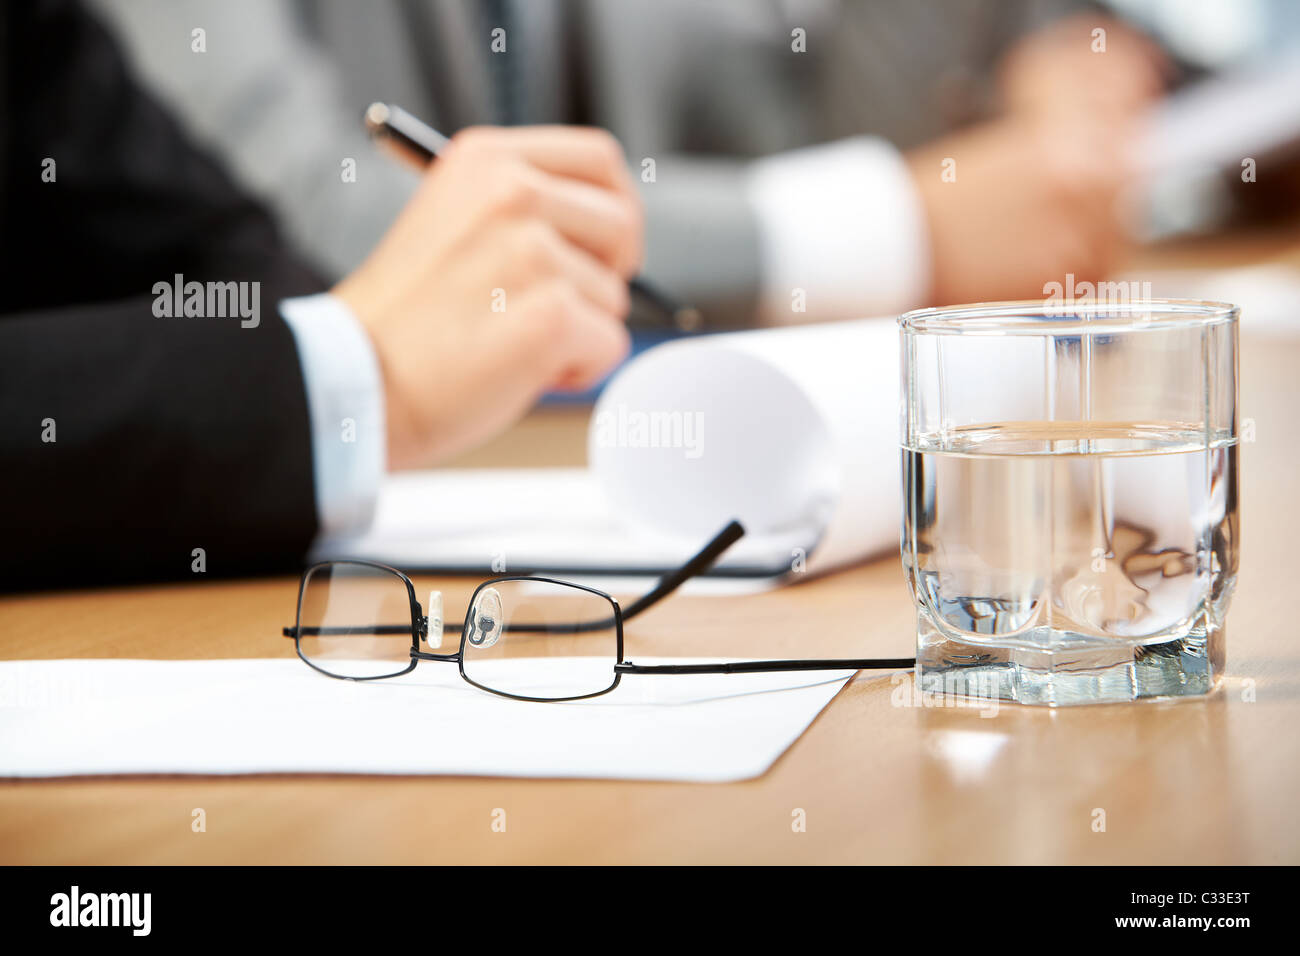 Image of human hand holding pen with glass of water, eyeglasses and paper near by - Stock Image